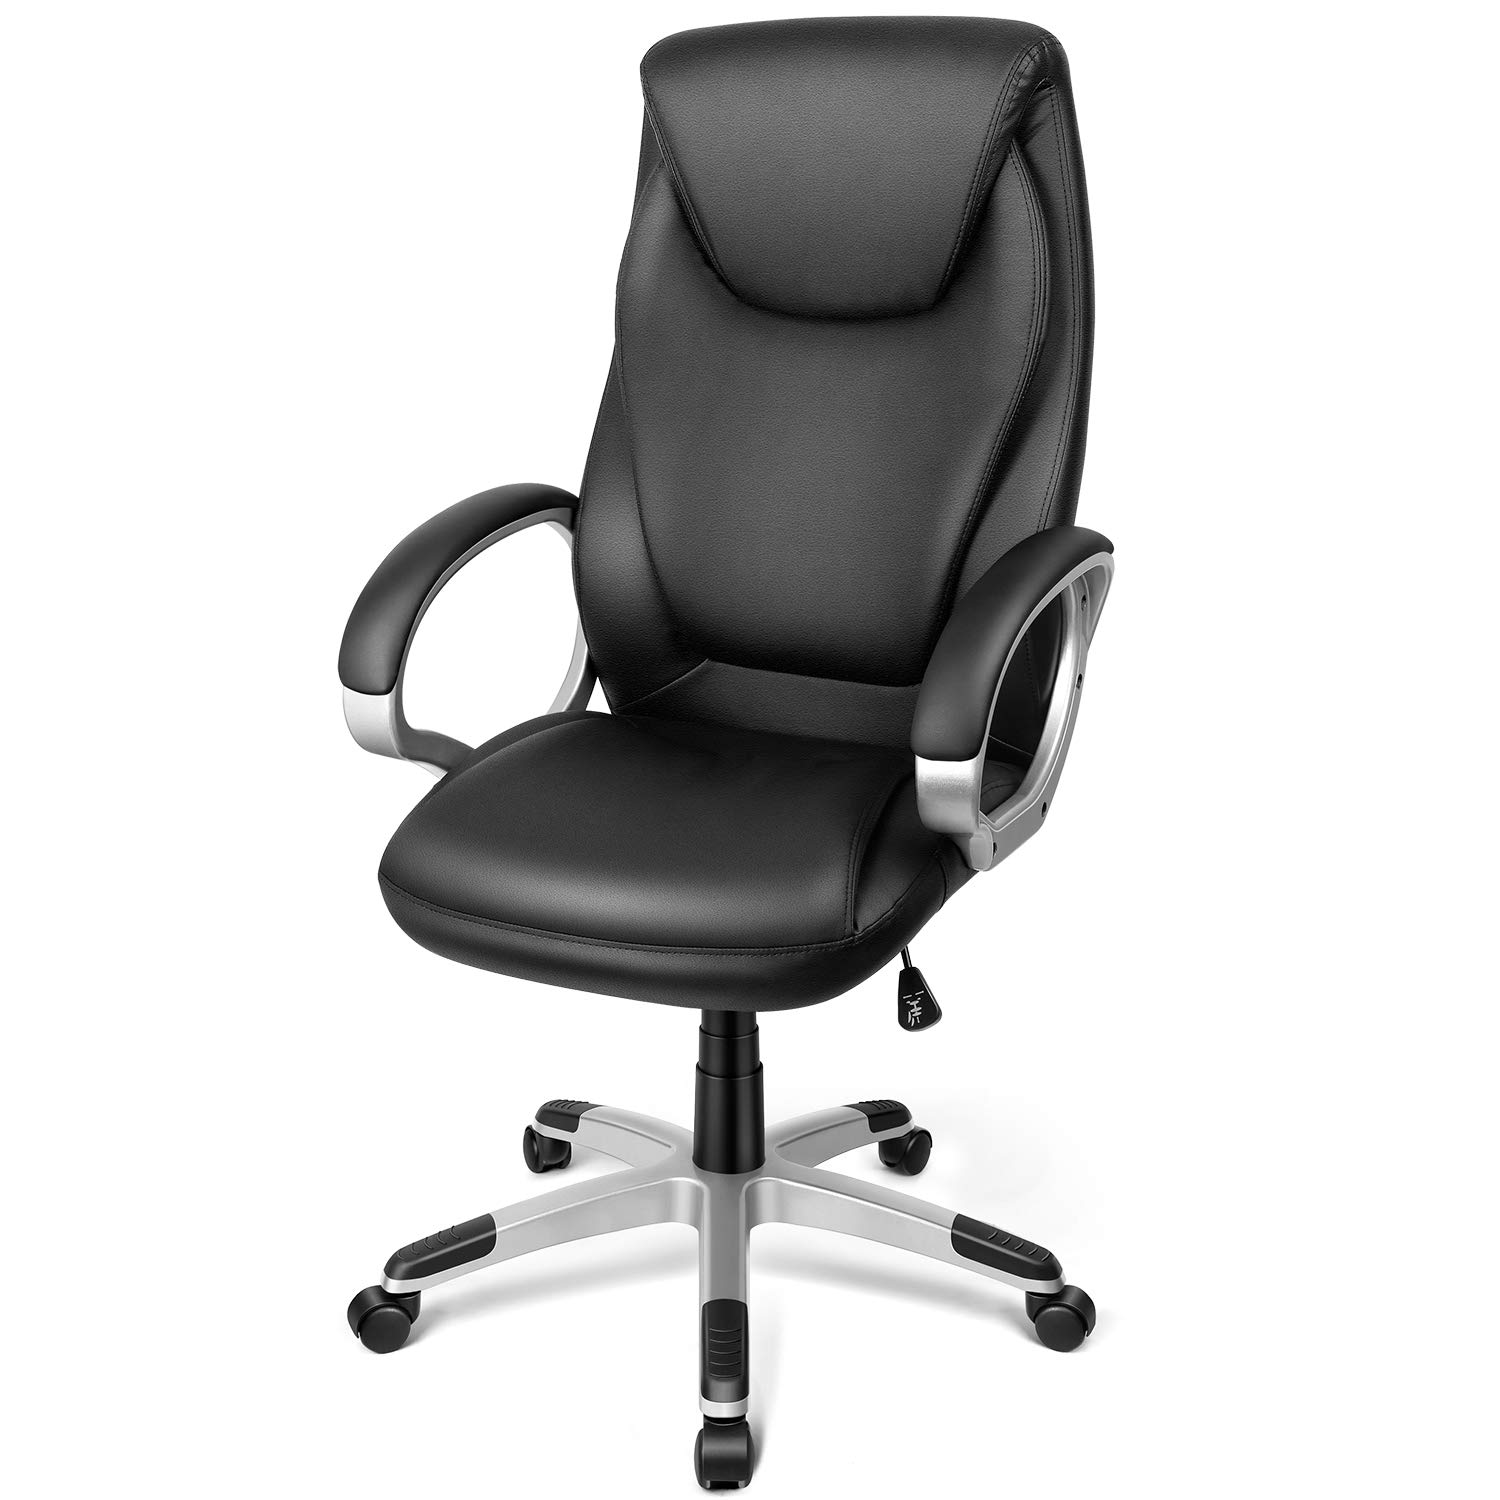 TUSY-Office Chair Desk High-Back Executive Swivel Chair Computer Chair Black with Back Support and Armrest in Home Office